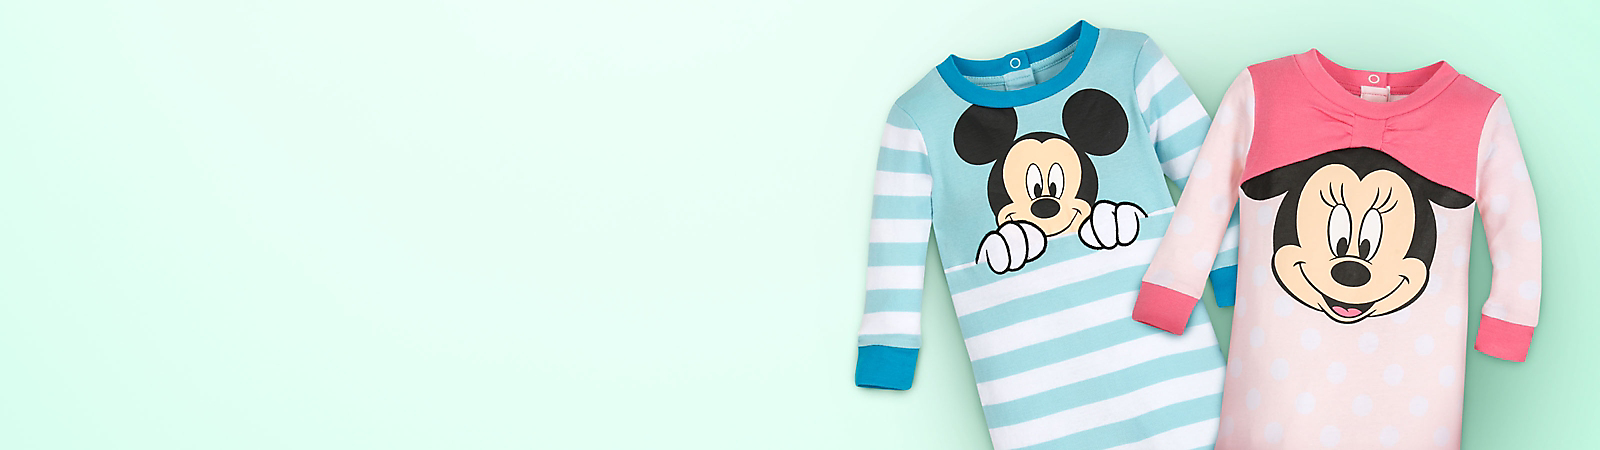 Background image of Baby Clothing